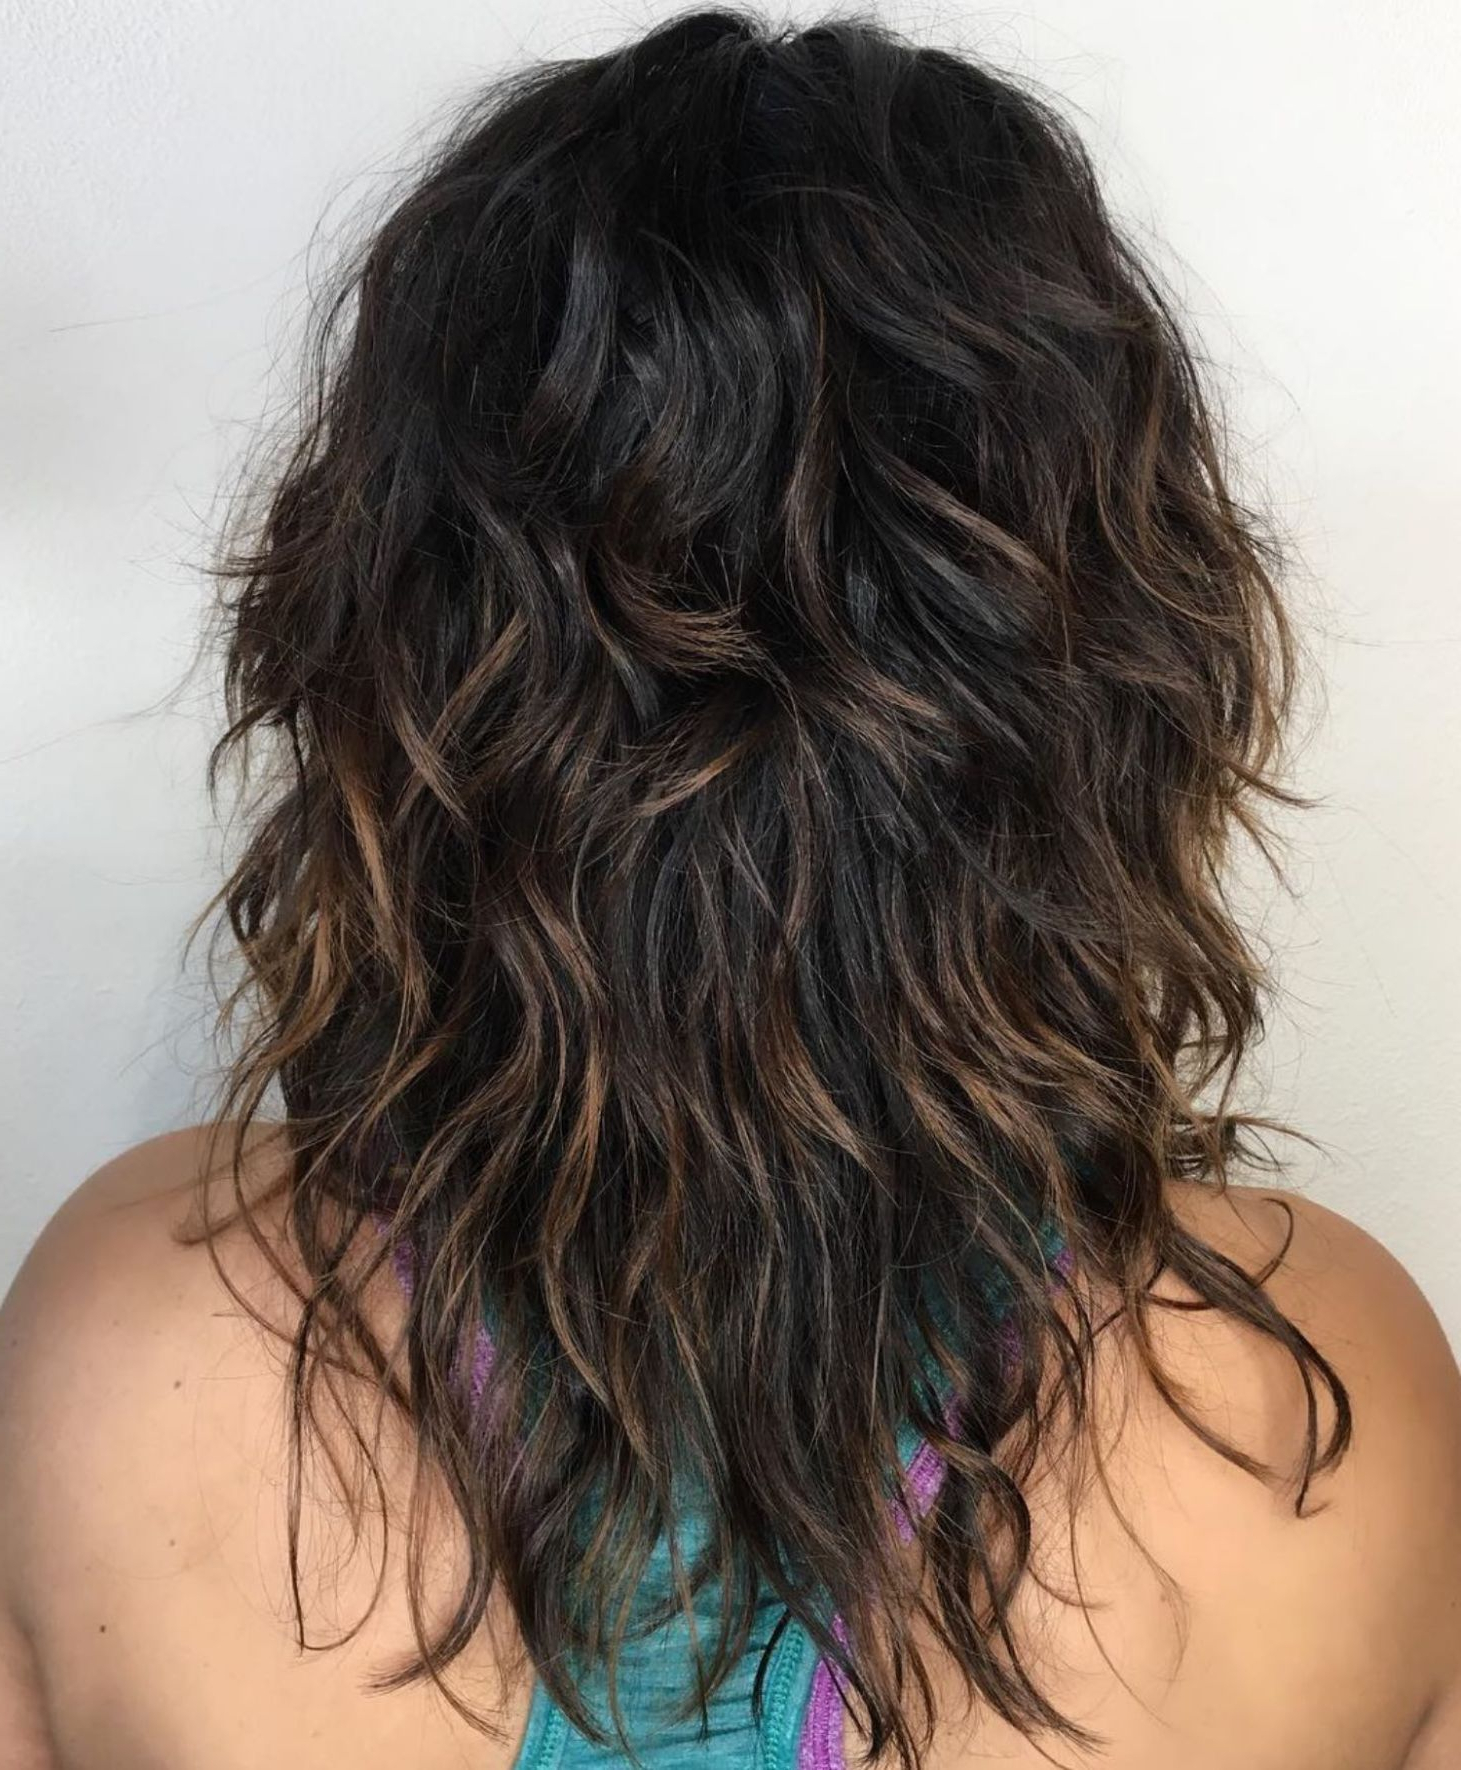 Pin On Hair For Preferred Brunette Wavy Razored Shag Haircuts (View 16 of 20)